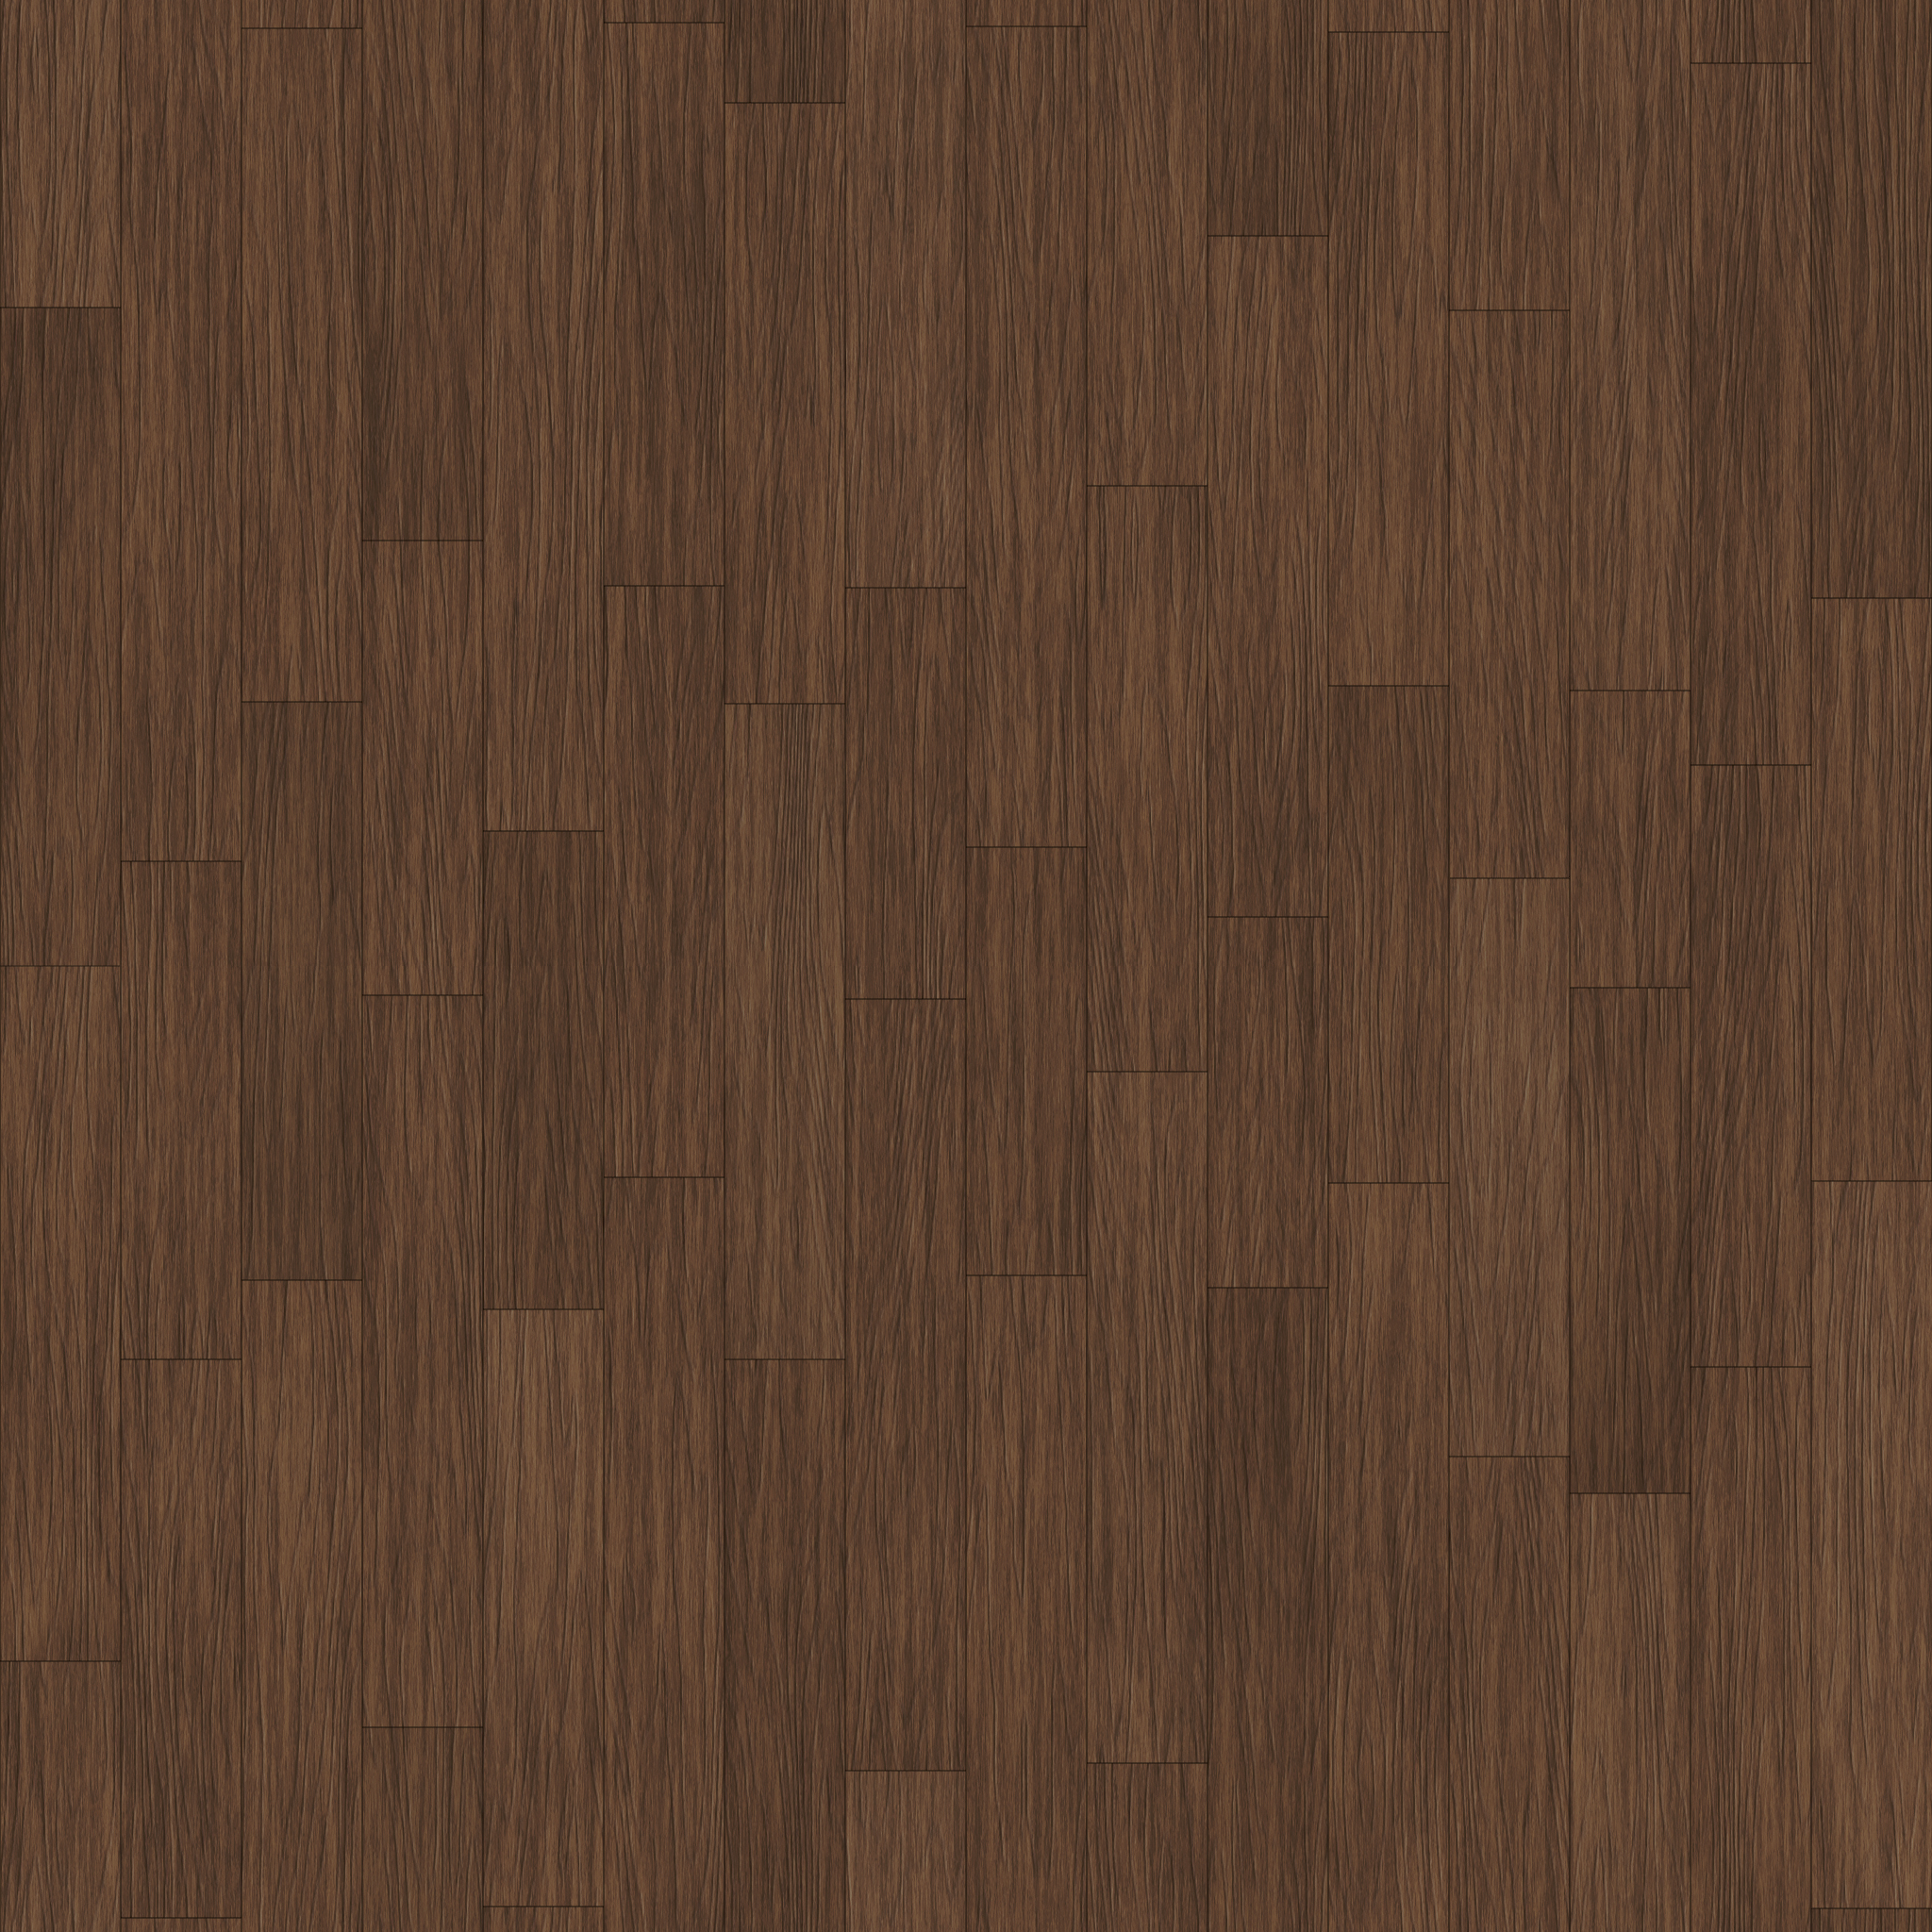 dark wood floor pattern.  artistic floor High Quality Free Seamless Wood Textures Photoshop Patterns